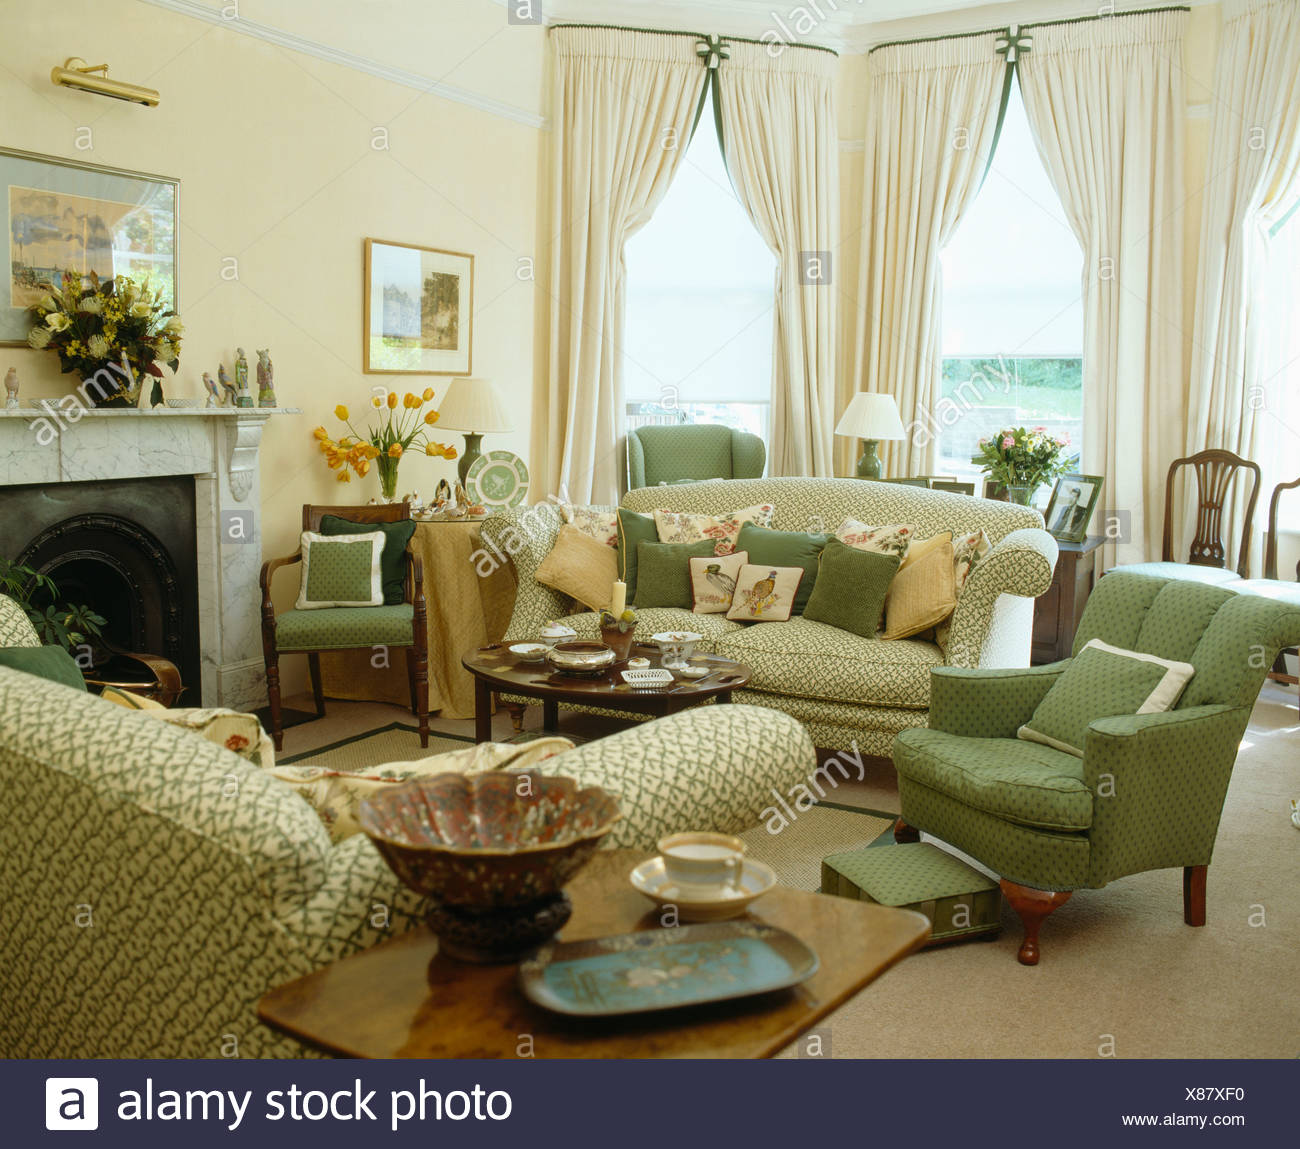 Green armchair and sofa piled with cushions in traditional ...